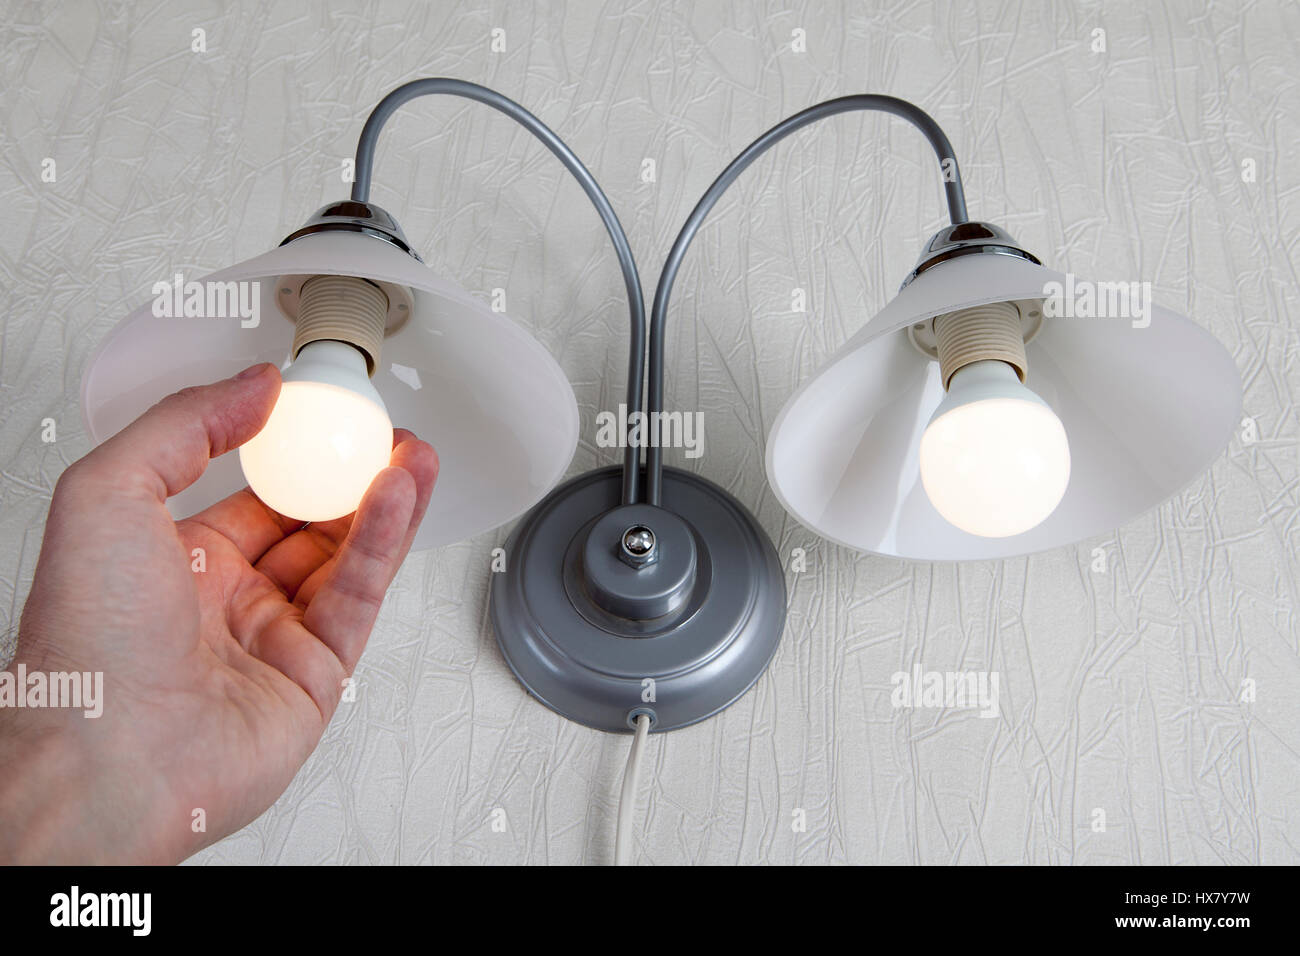 Make The Switch To Energy-Efficient LED lamp, Hand Replacing ...